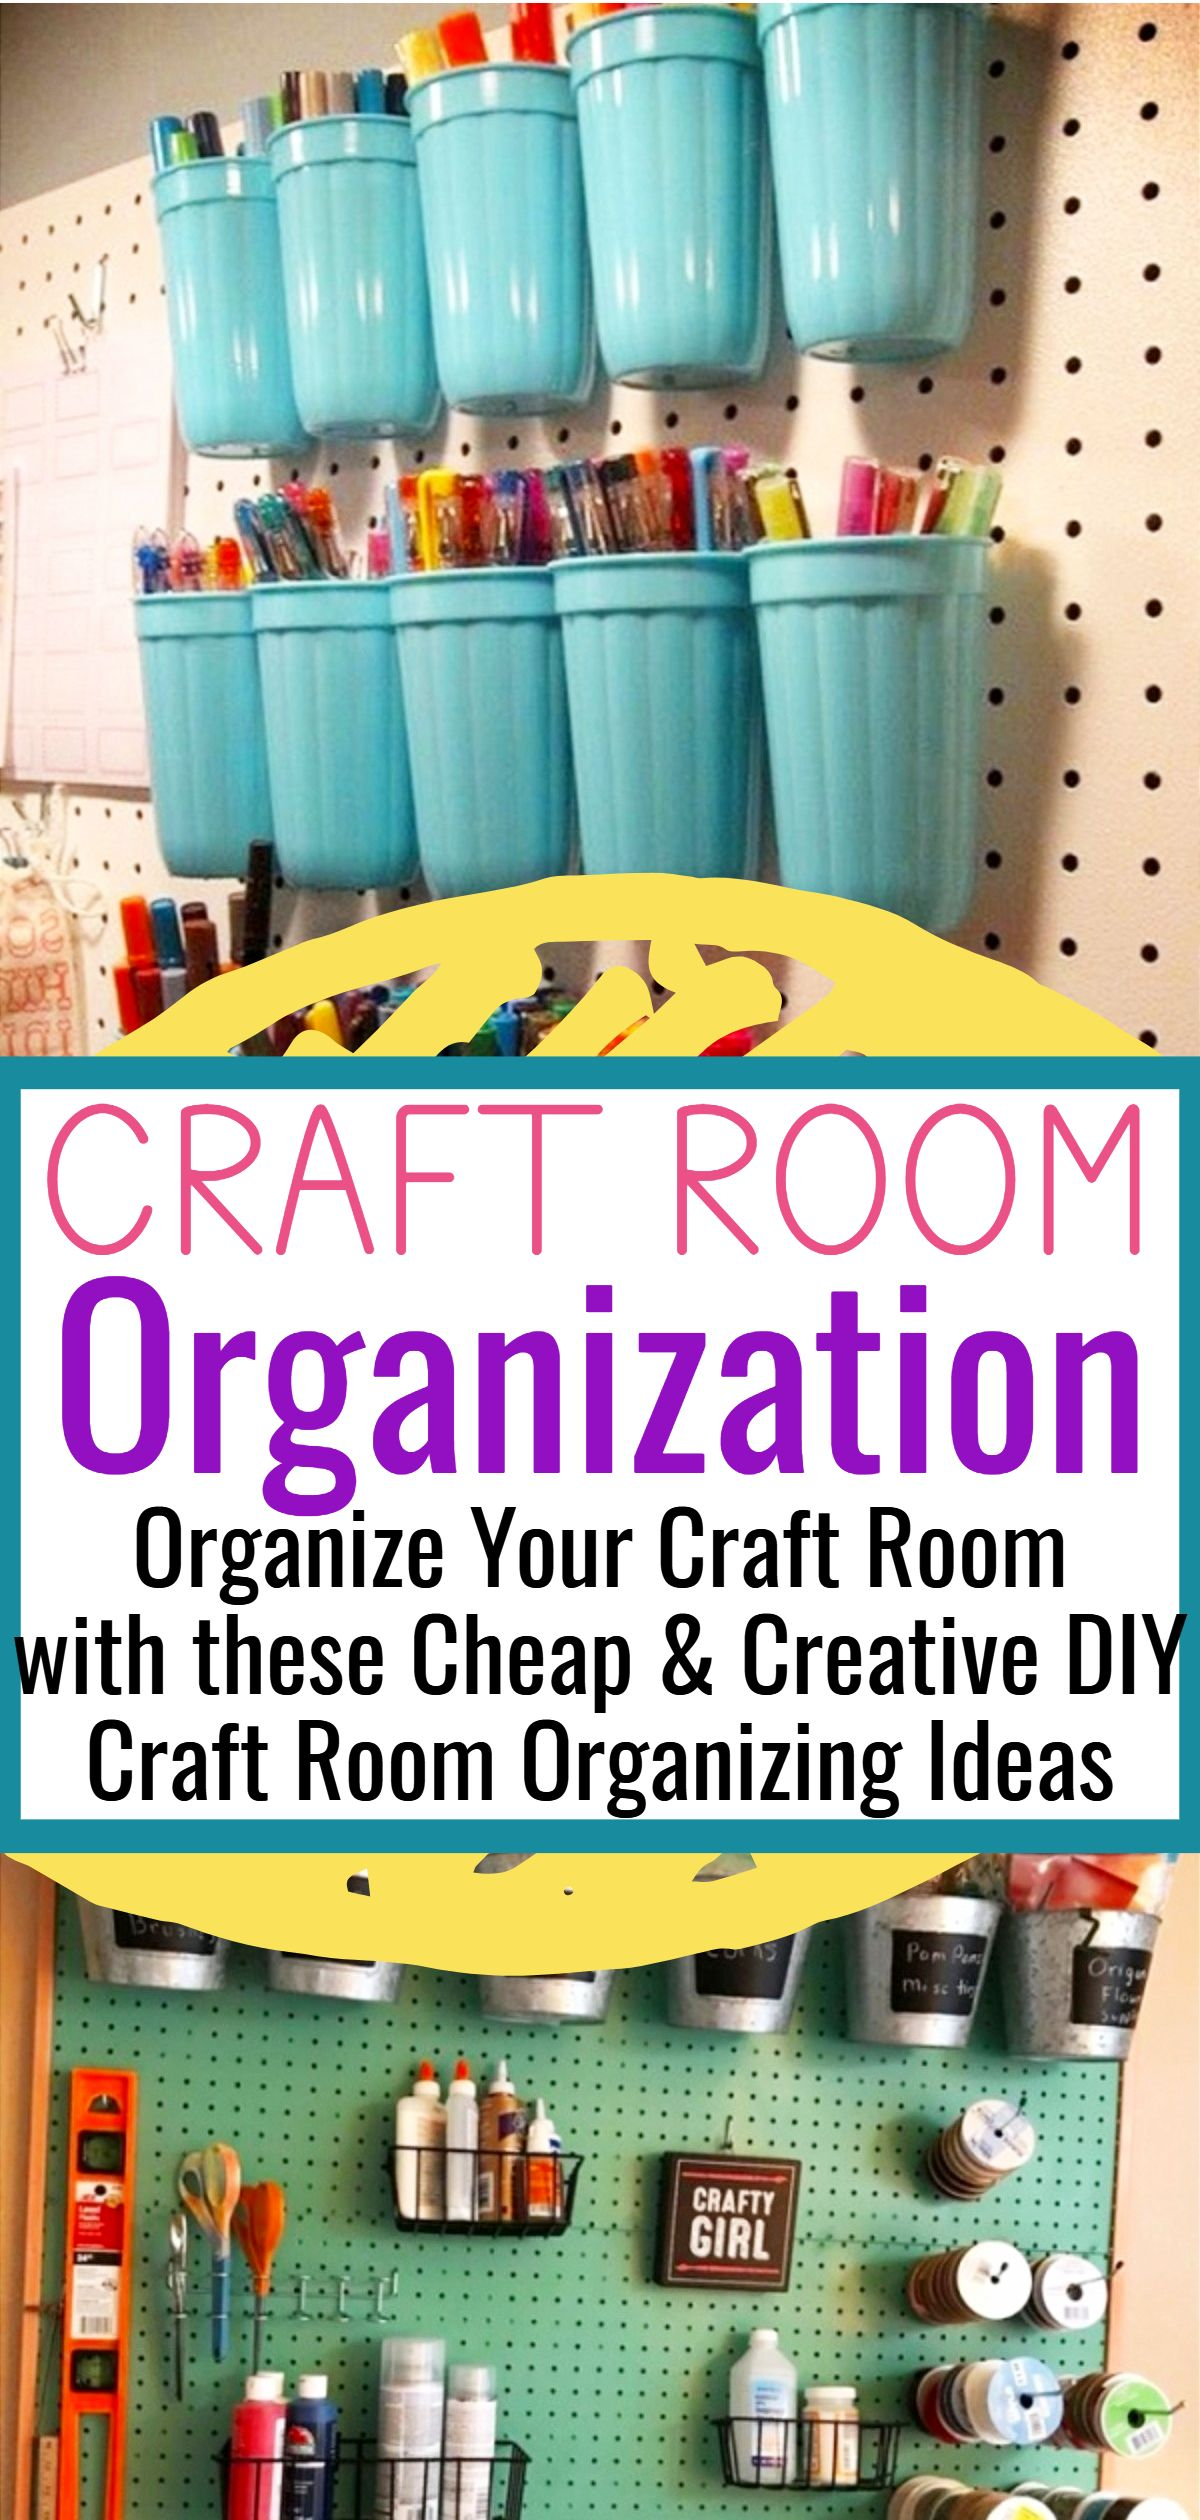 Craft Room Organization Organize Your Craft Room Craft Room Organization